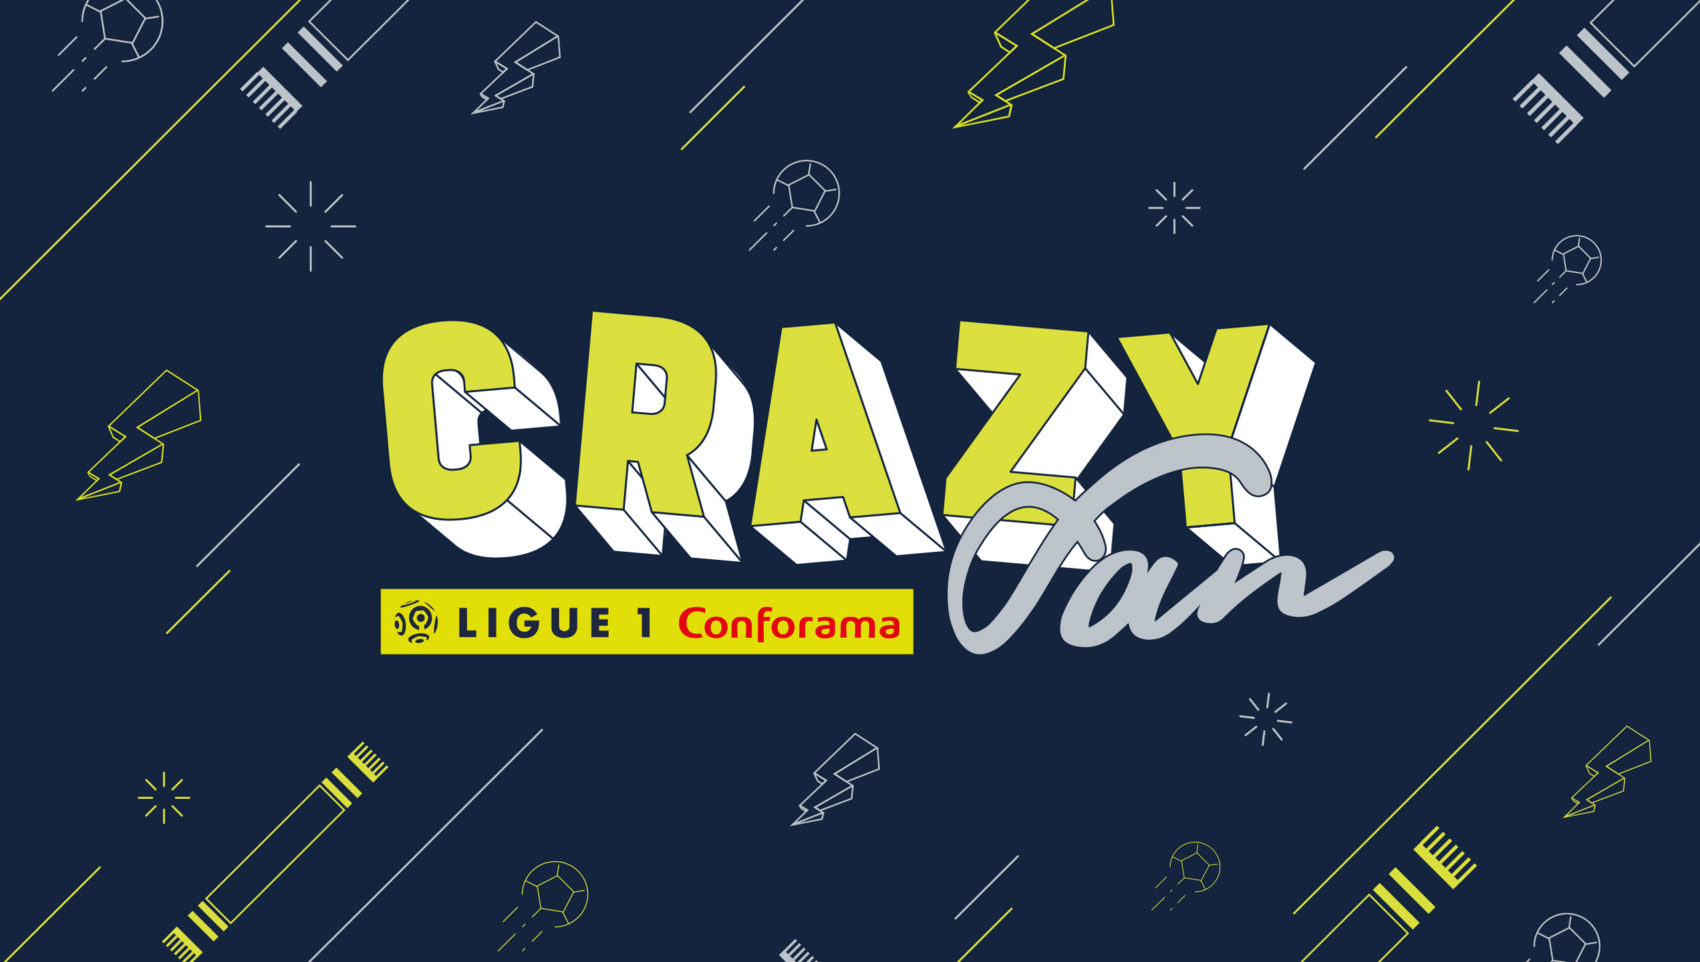 Projet_crazy_fan_Ligue_1_Conforama_LFP_Ligue_de_football_professionnel_professional_league